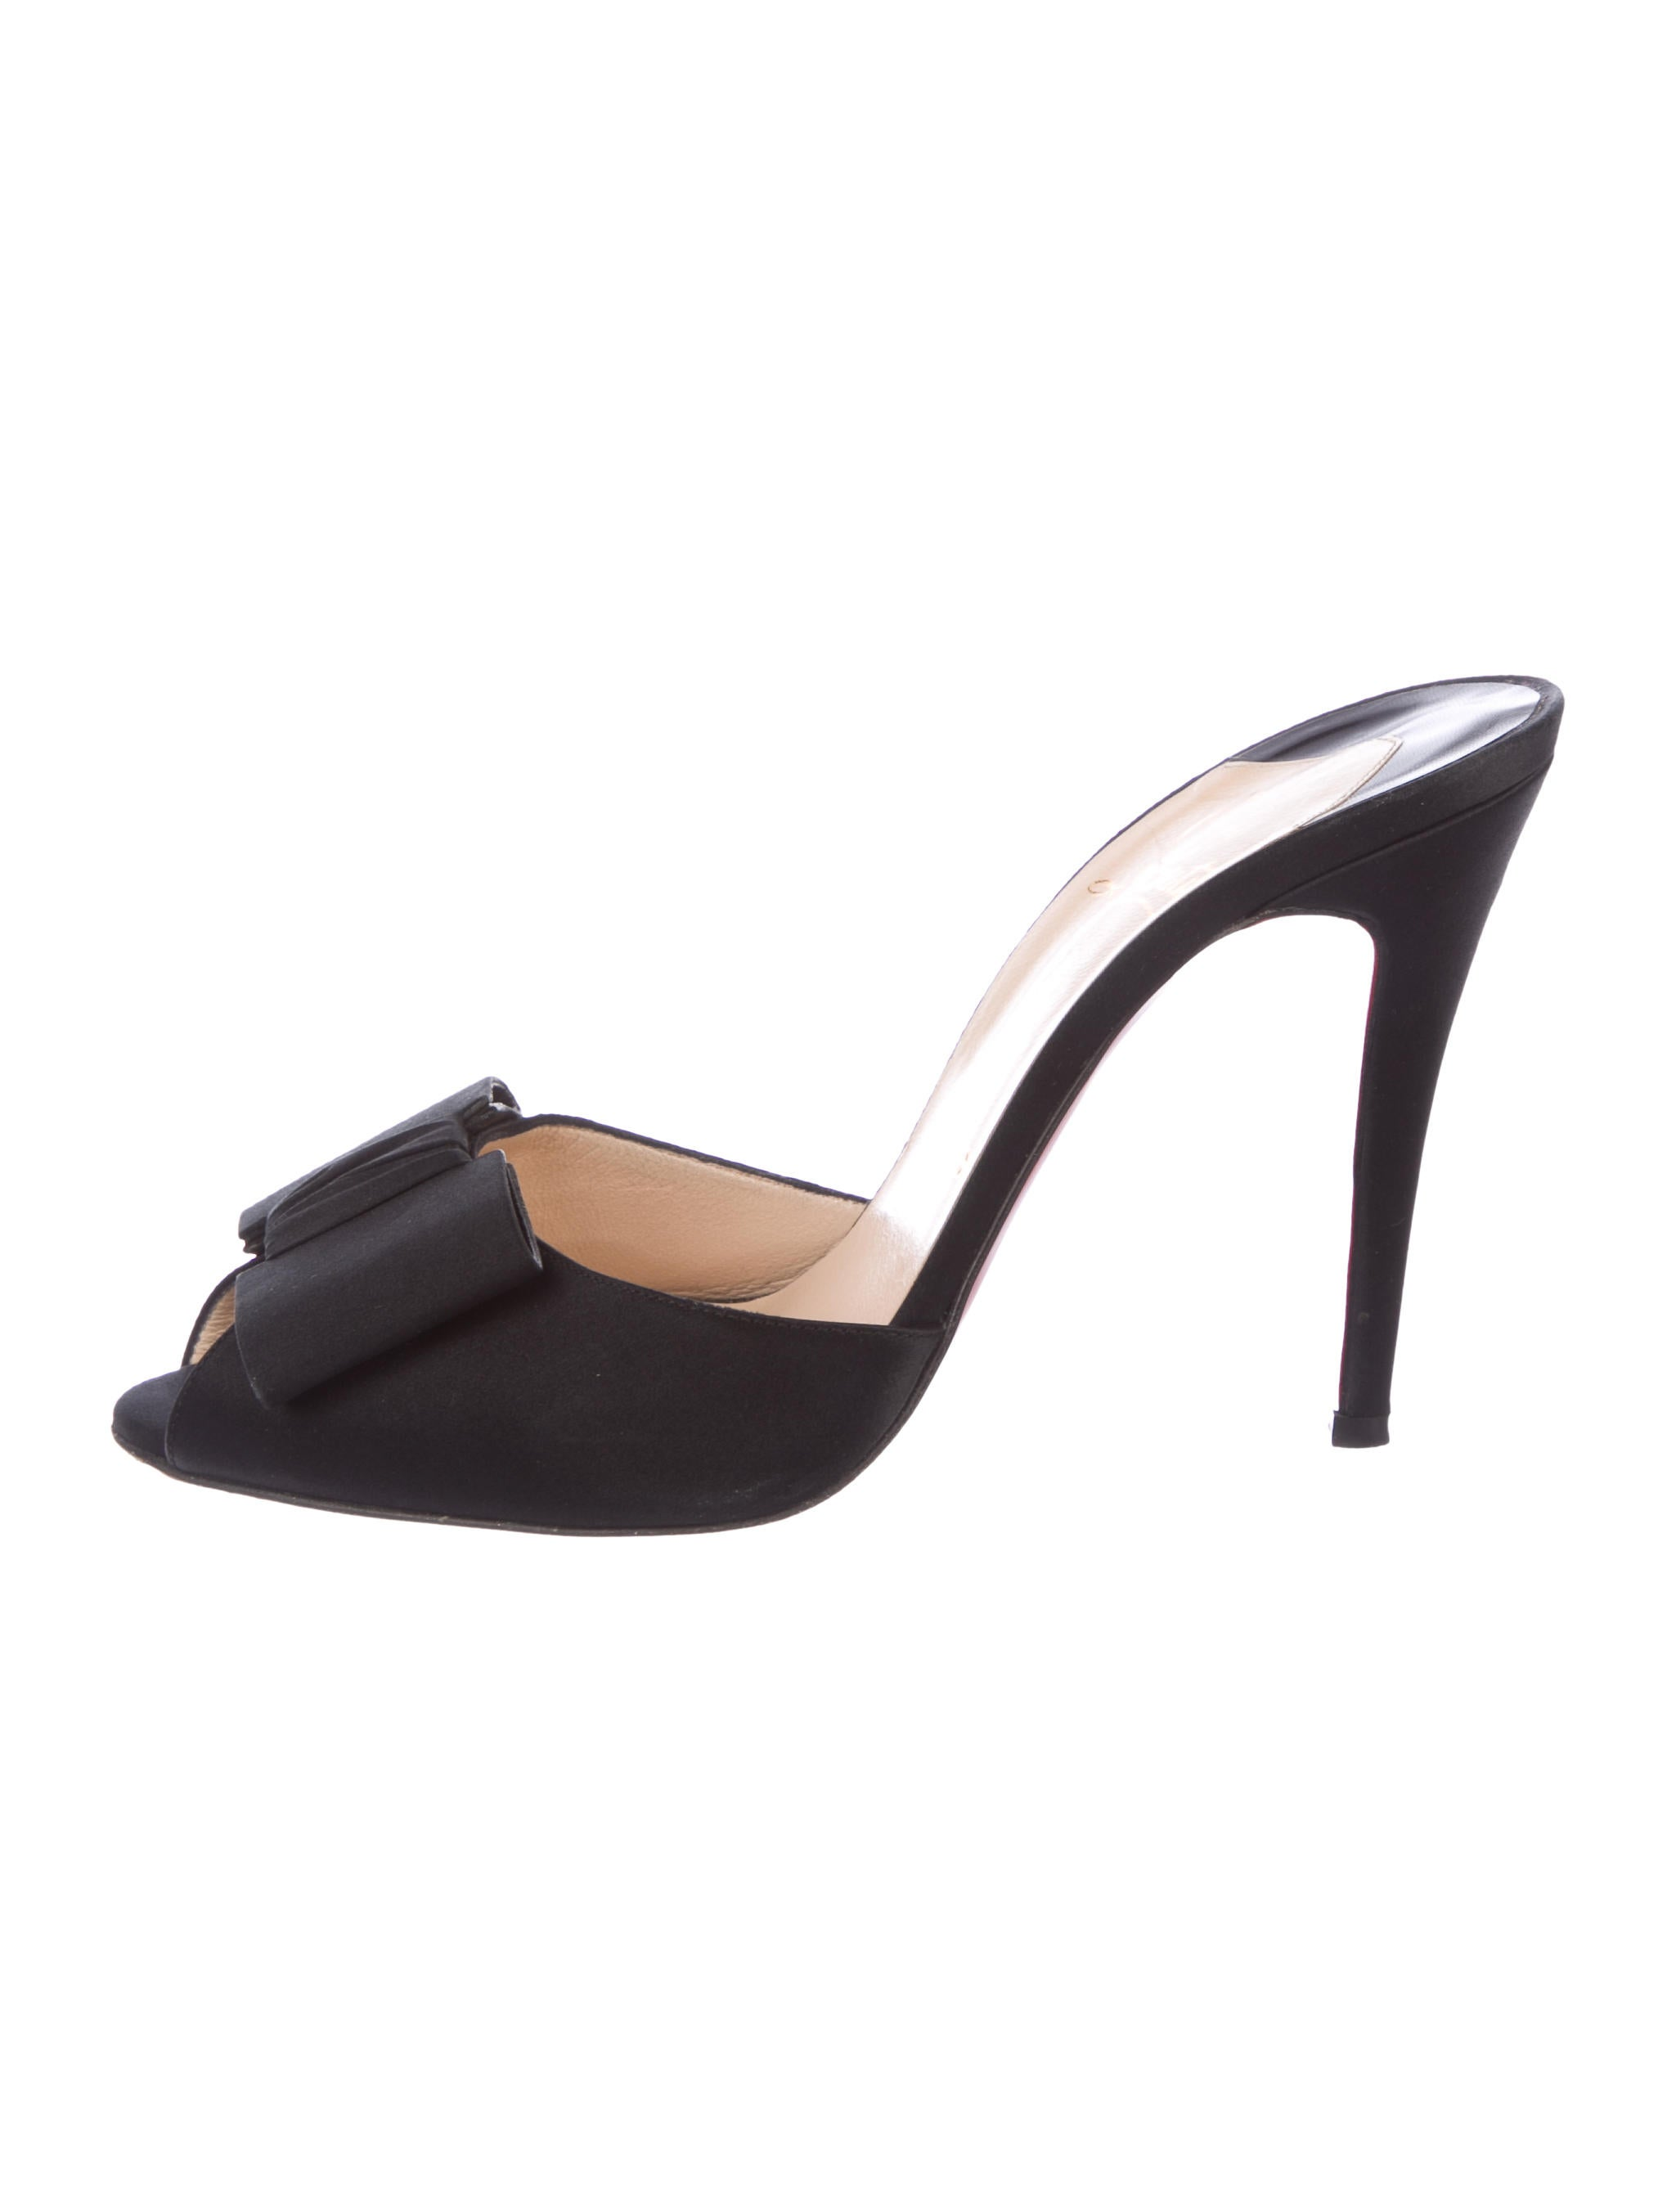 Christian Louboutin Satin Slide Sandals manchester great sale online discount footaction YTE84XU7s4